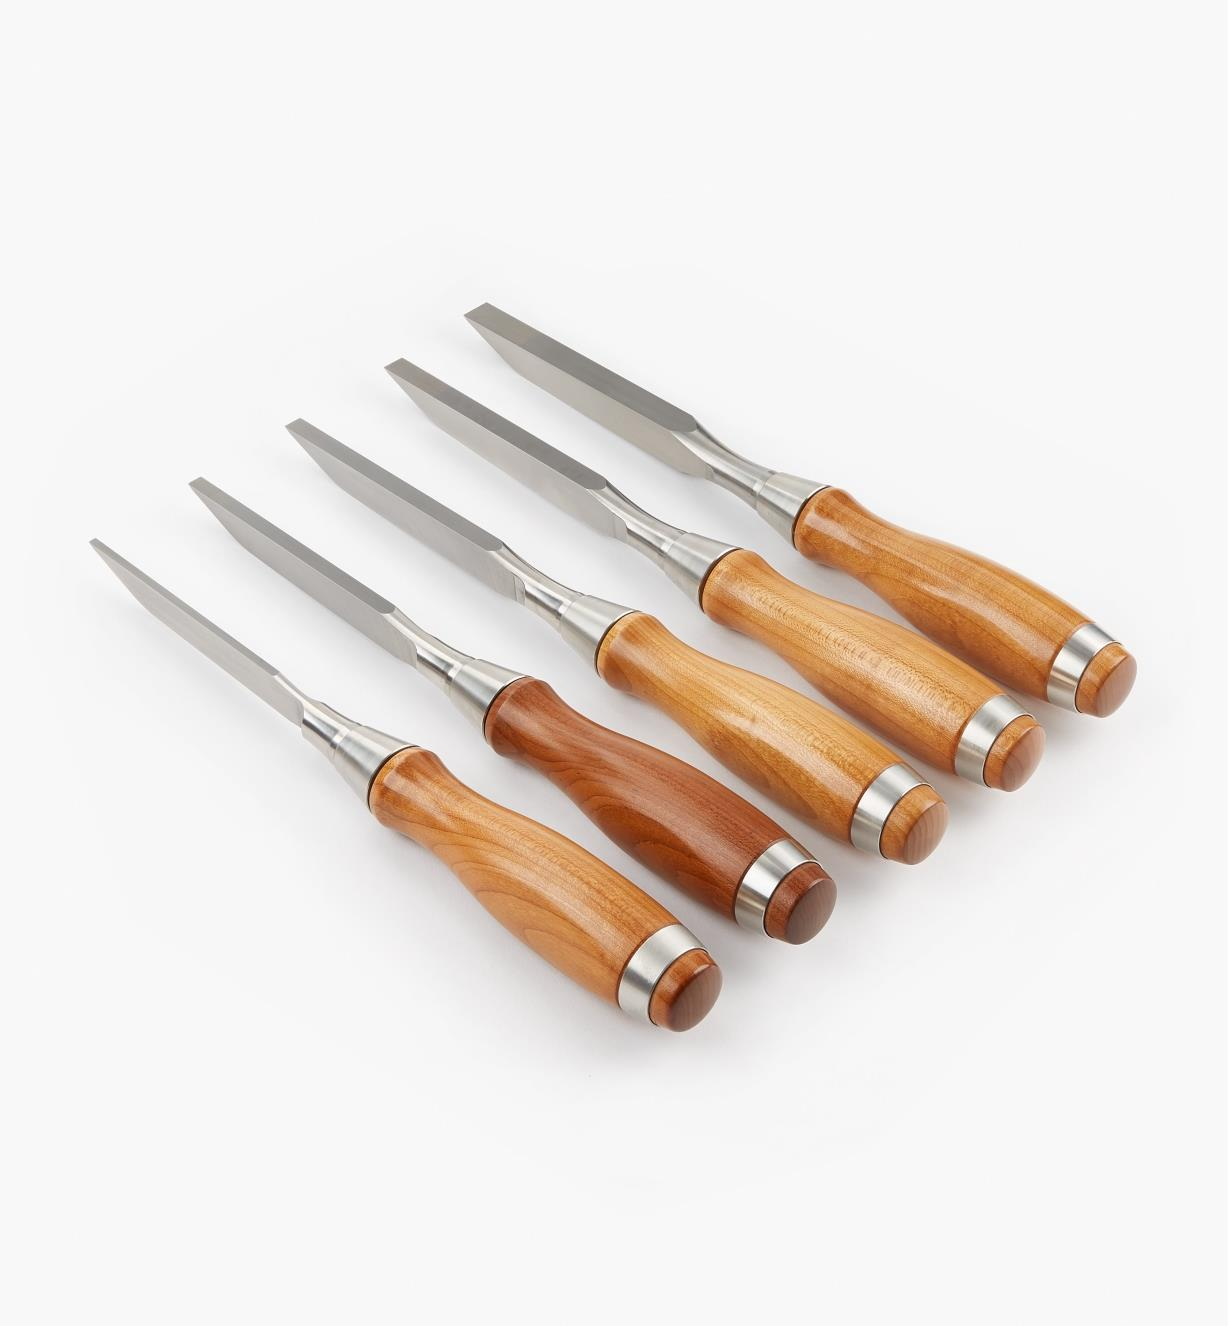 05S3240 - Set of 5 Veritas Mortise Chisels, A2